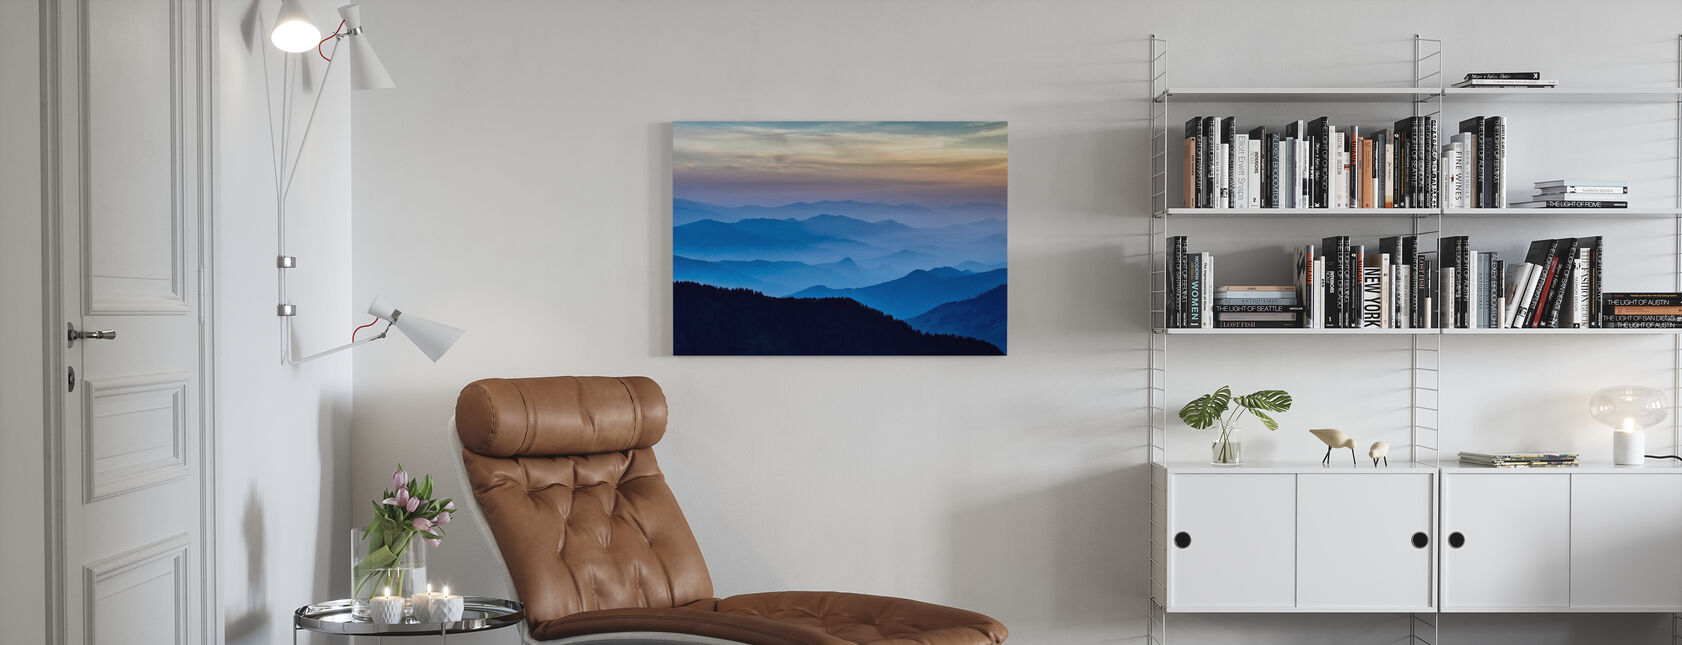 Rhythm of the Mountains - Canvas print - Living Room